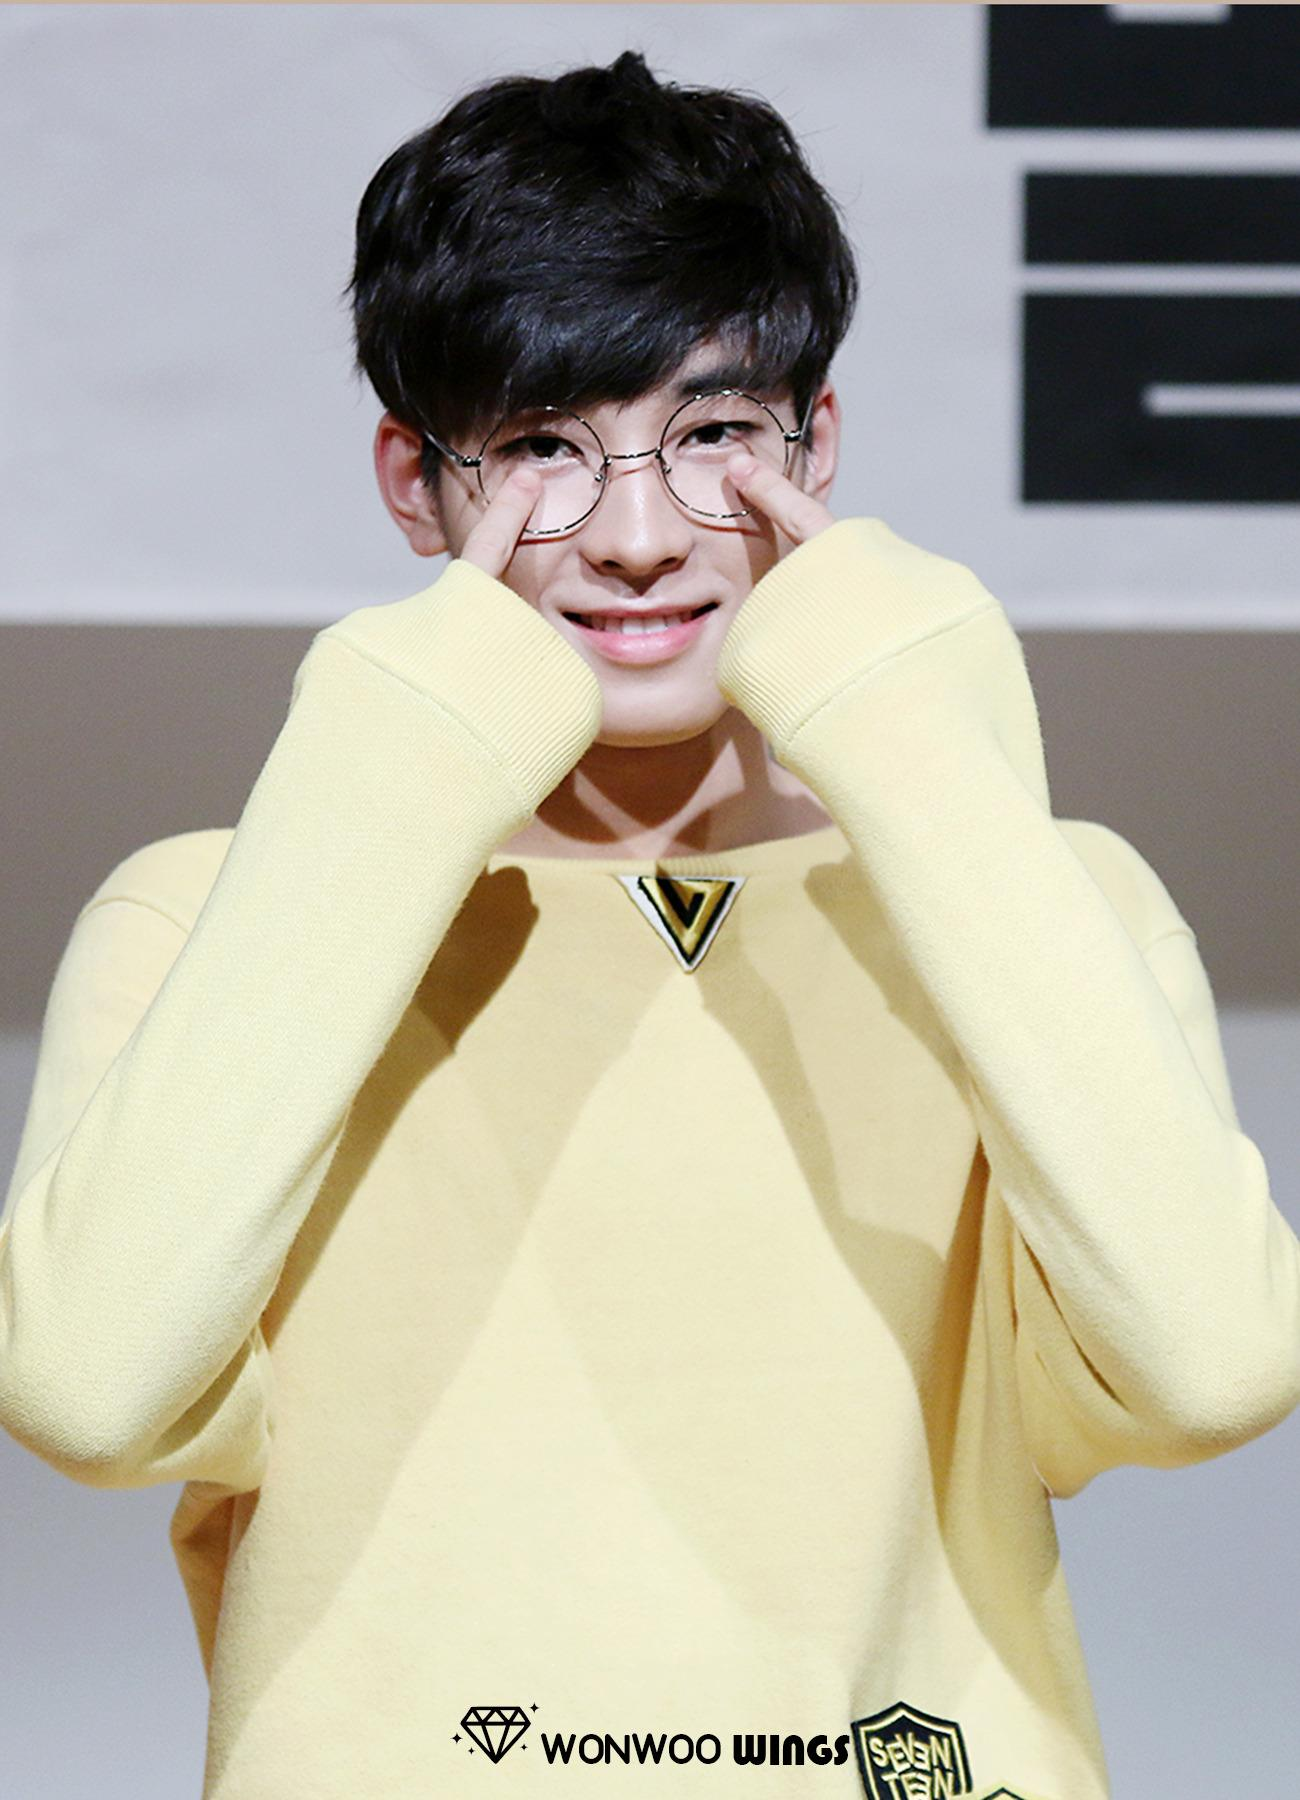 Wonwoo proves that his glasses are really for his bad vision by touching them.